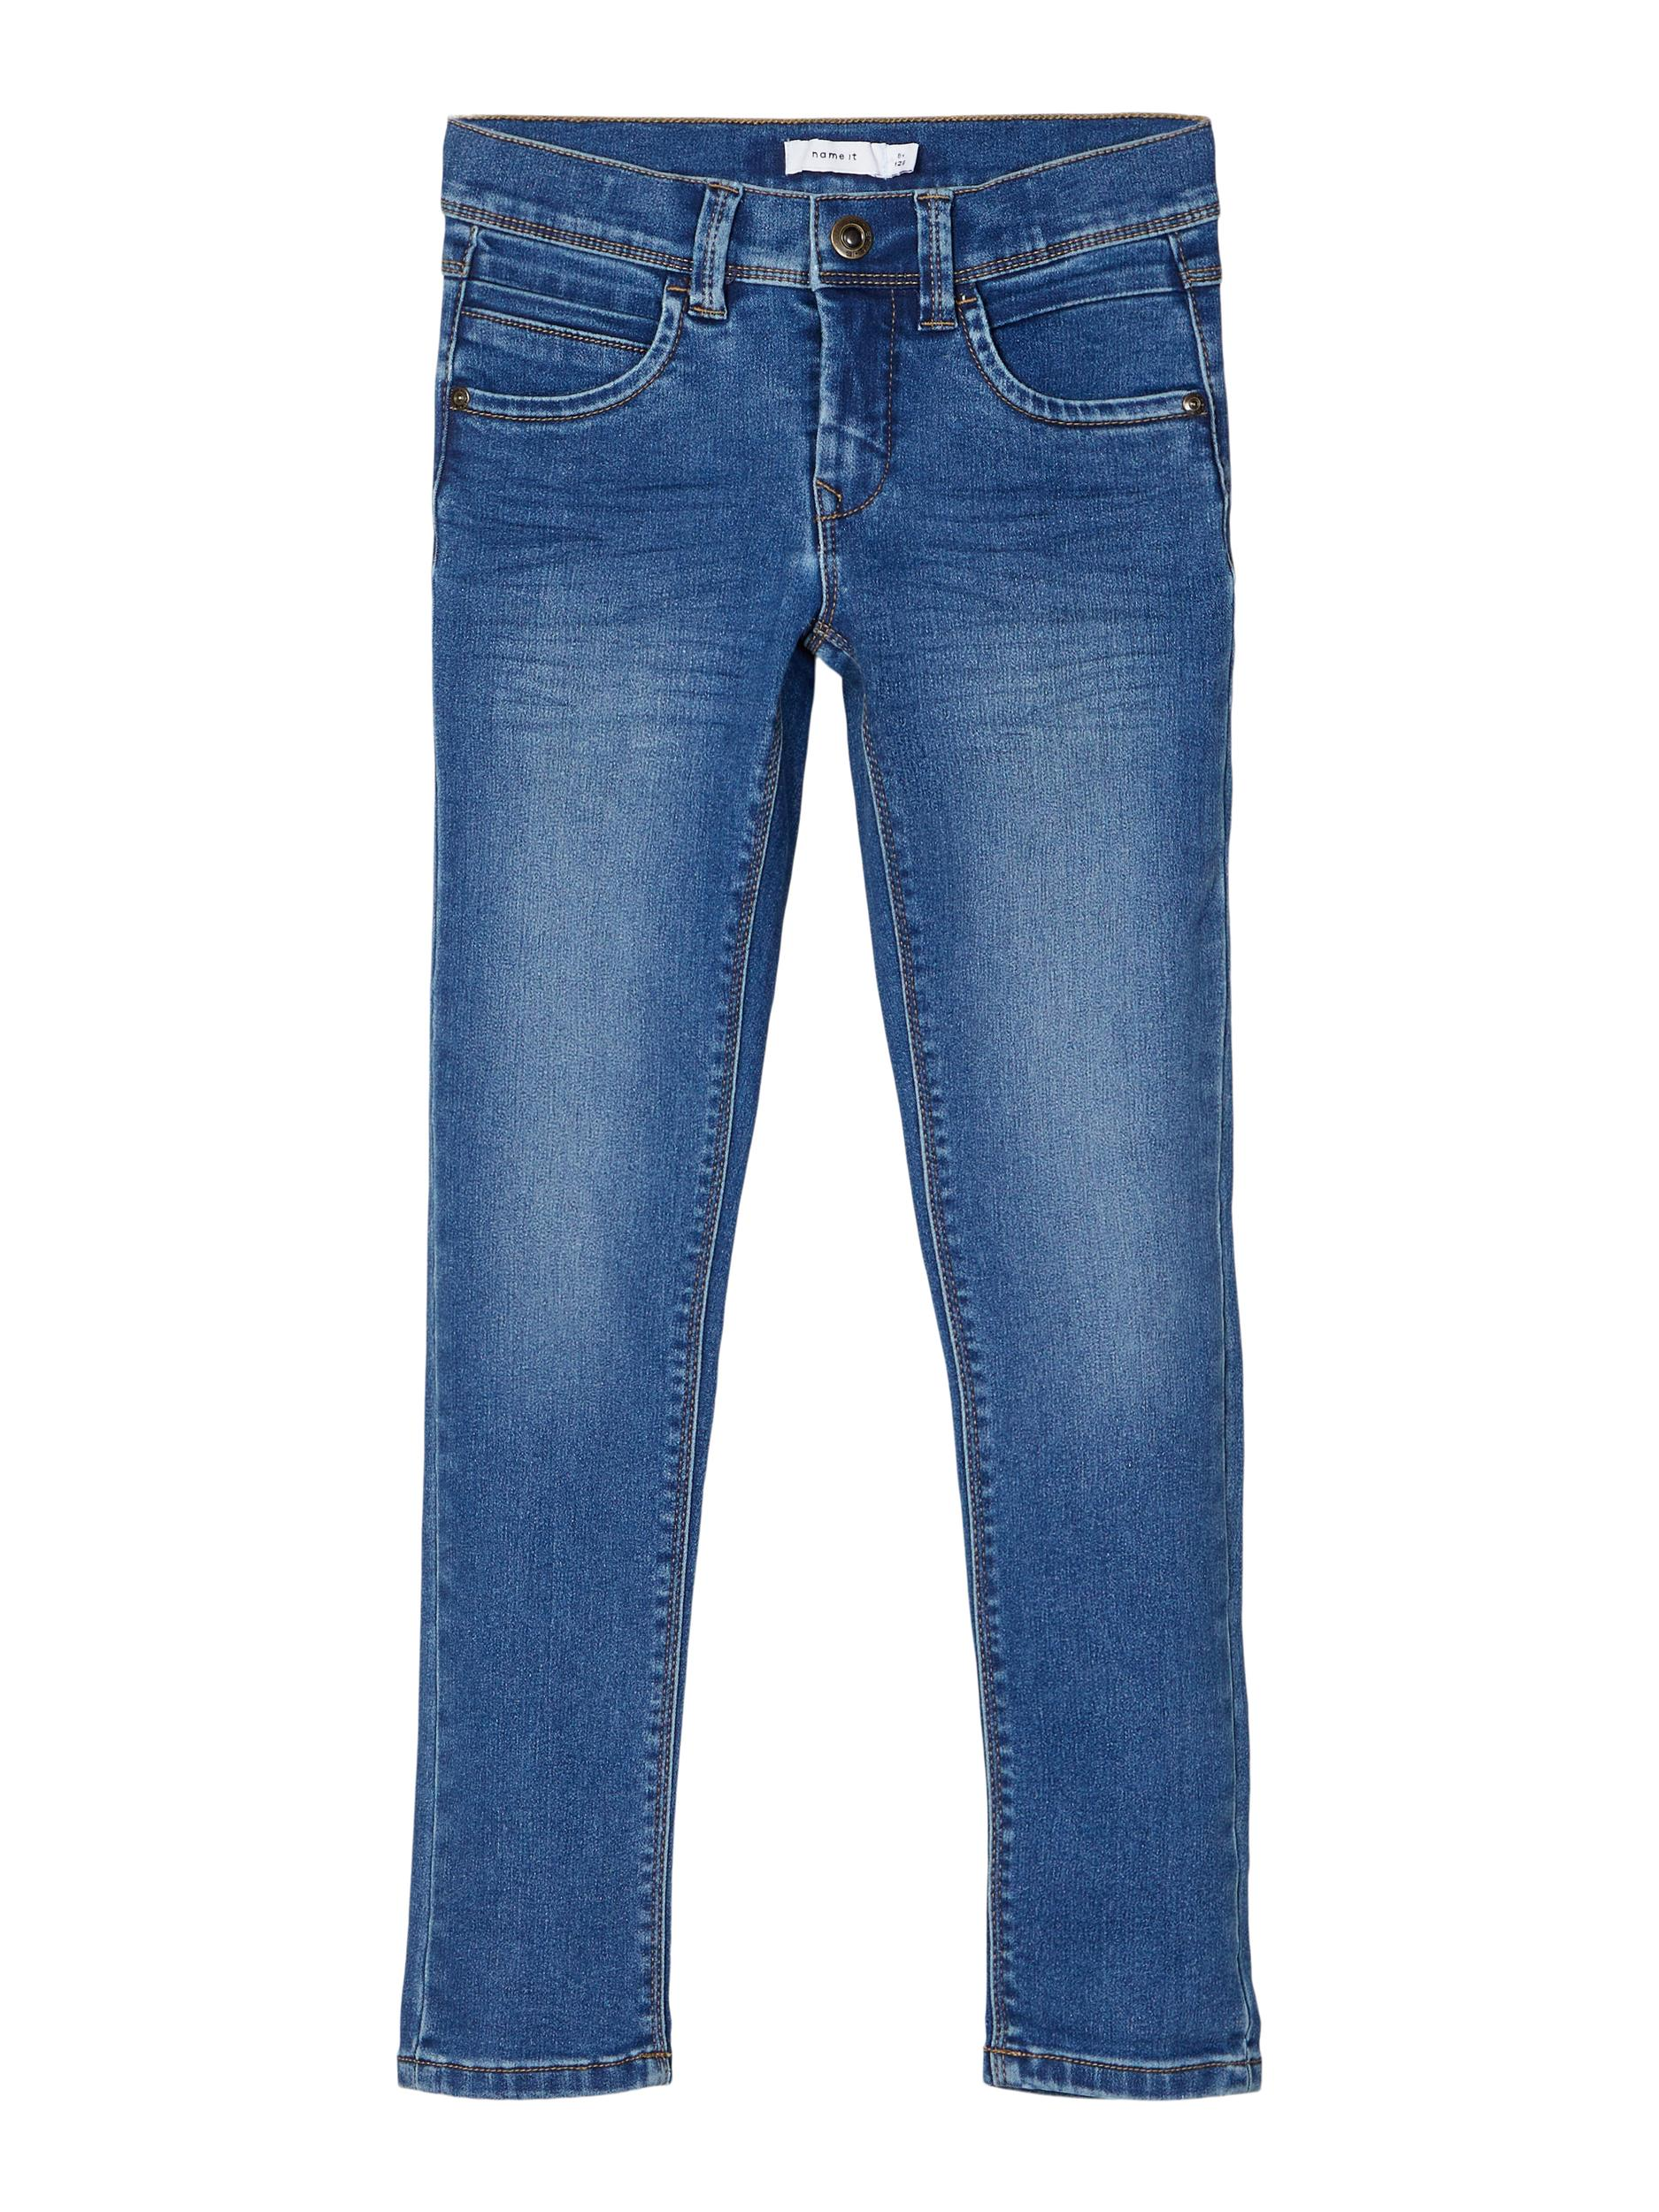 JEANS NKM SILAS DNMTAX 2467 PANT